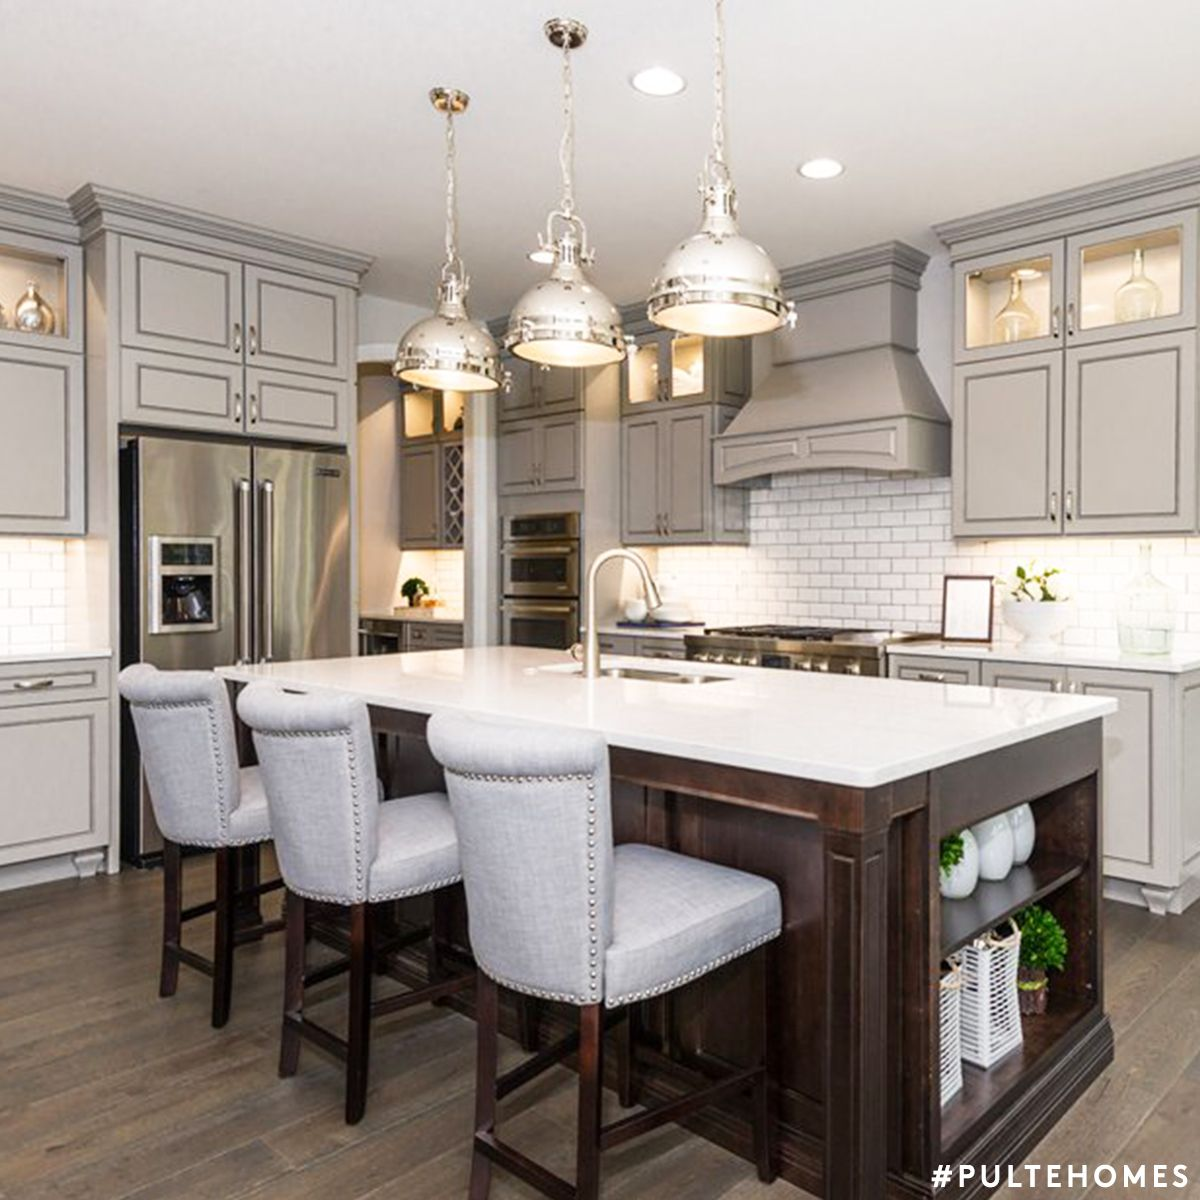 Hgtv Dream Kitchen Designs: Get This Gorgeous Gray Look In Your Kitchen By Using SW